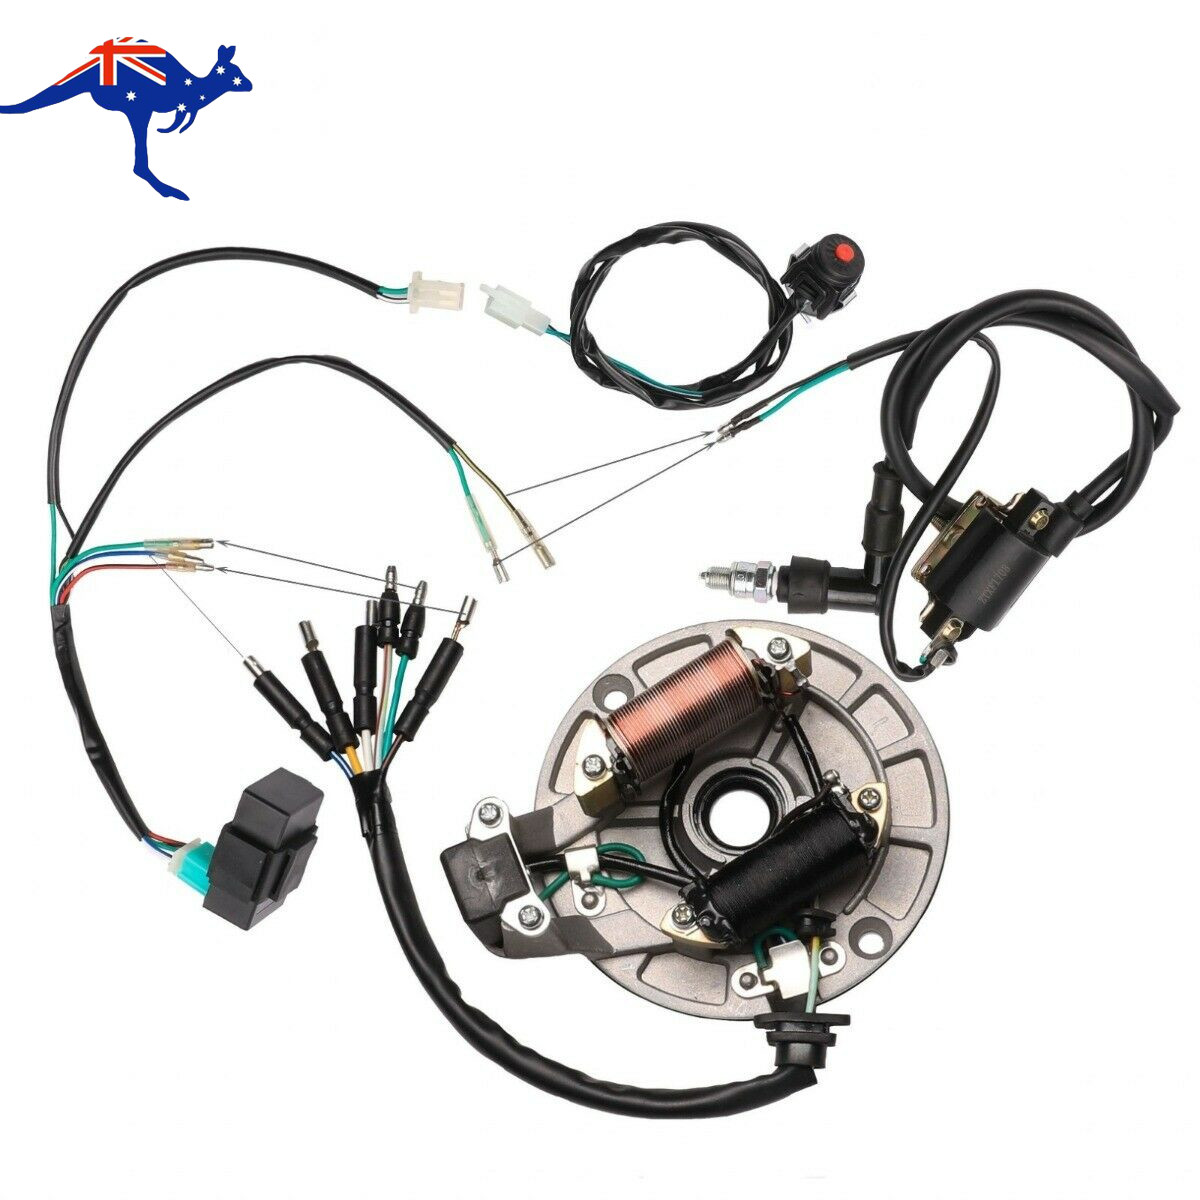 Kick Start Wiring Harness Cdi Coil Magneto Stator For Dirt